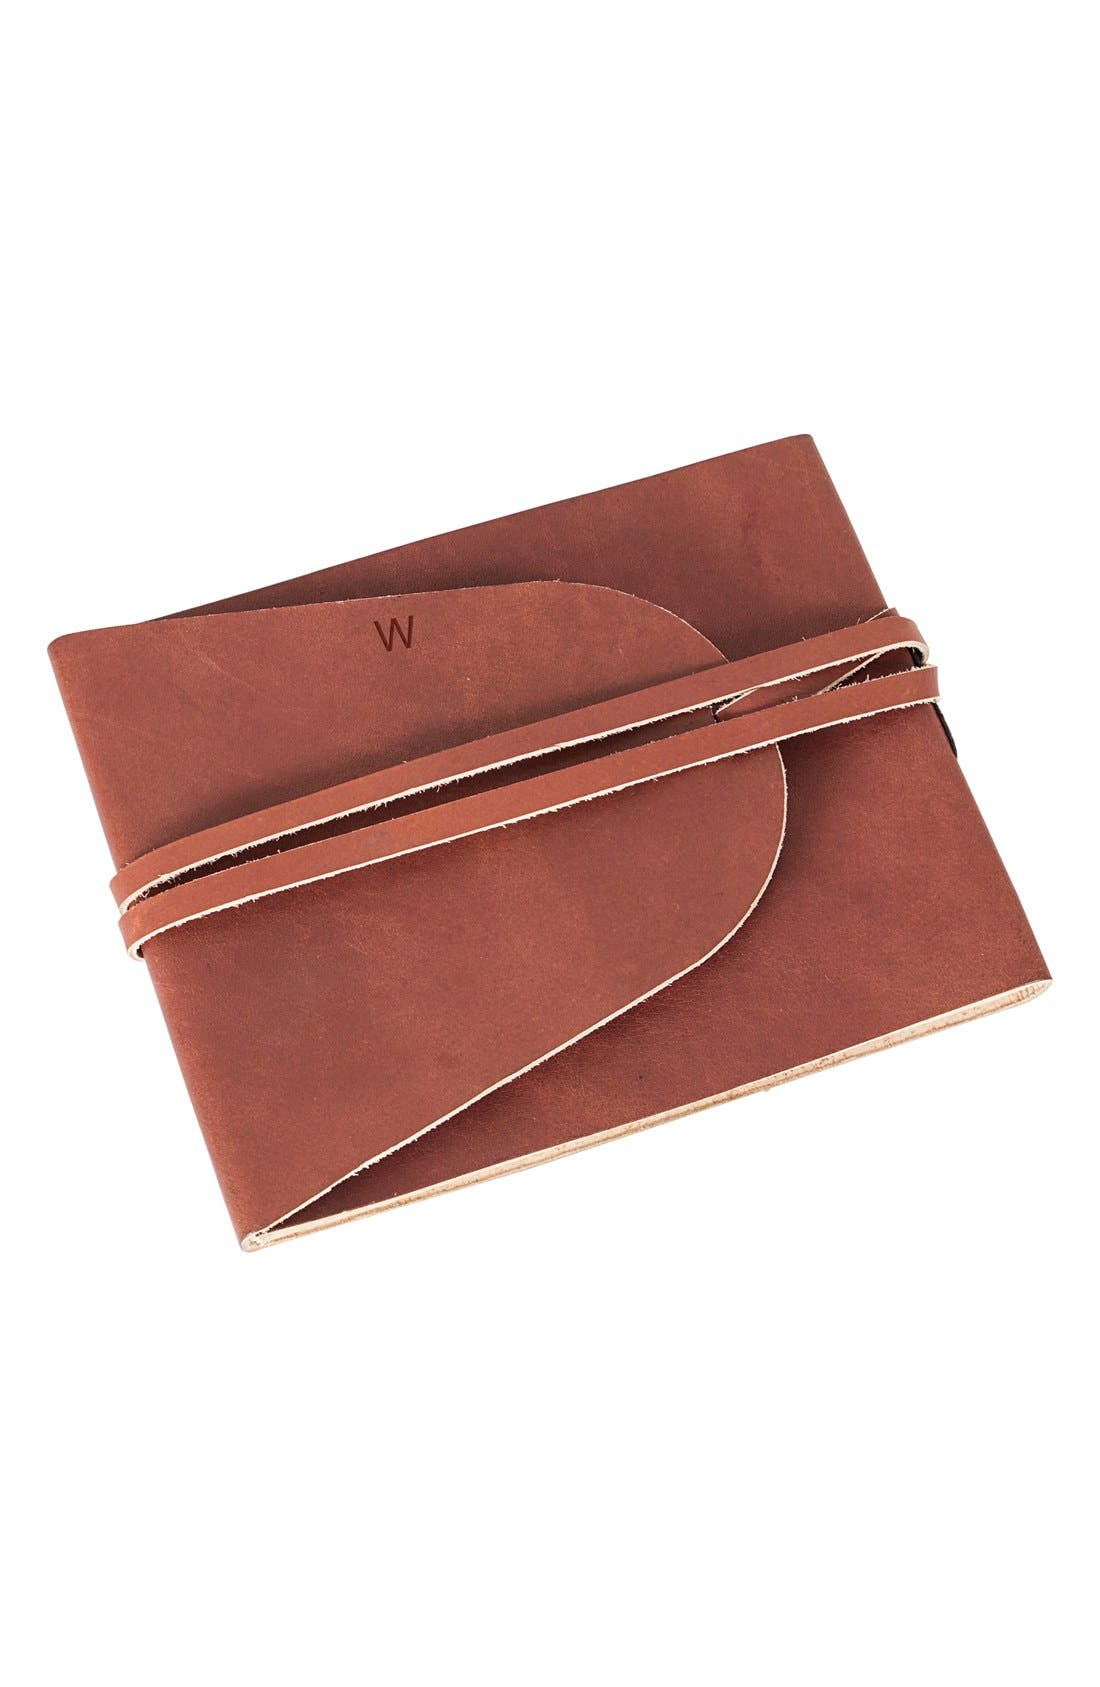 Alternate Image 2  - Cathy's Concepts Monogram Leather Guest Book